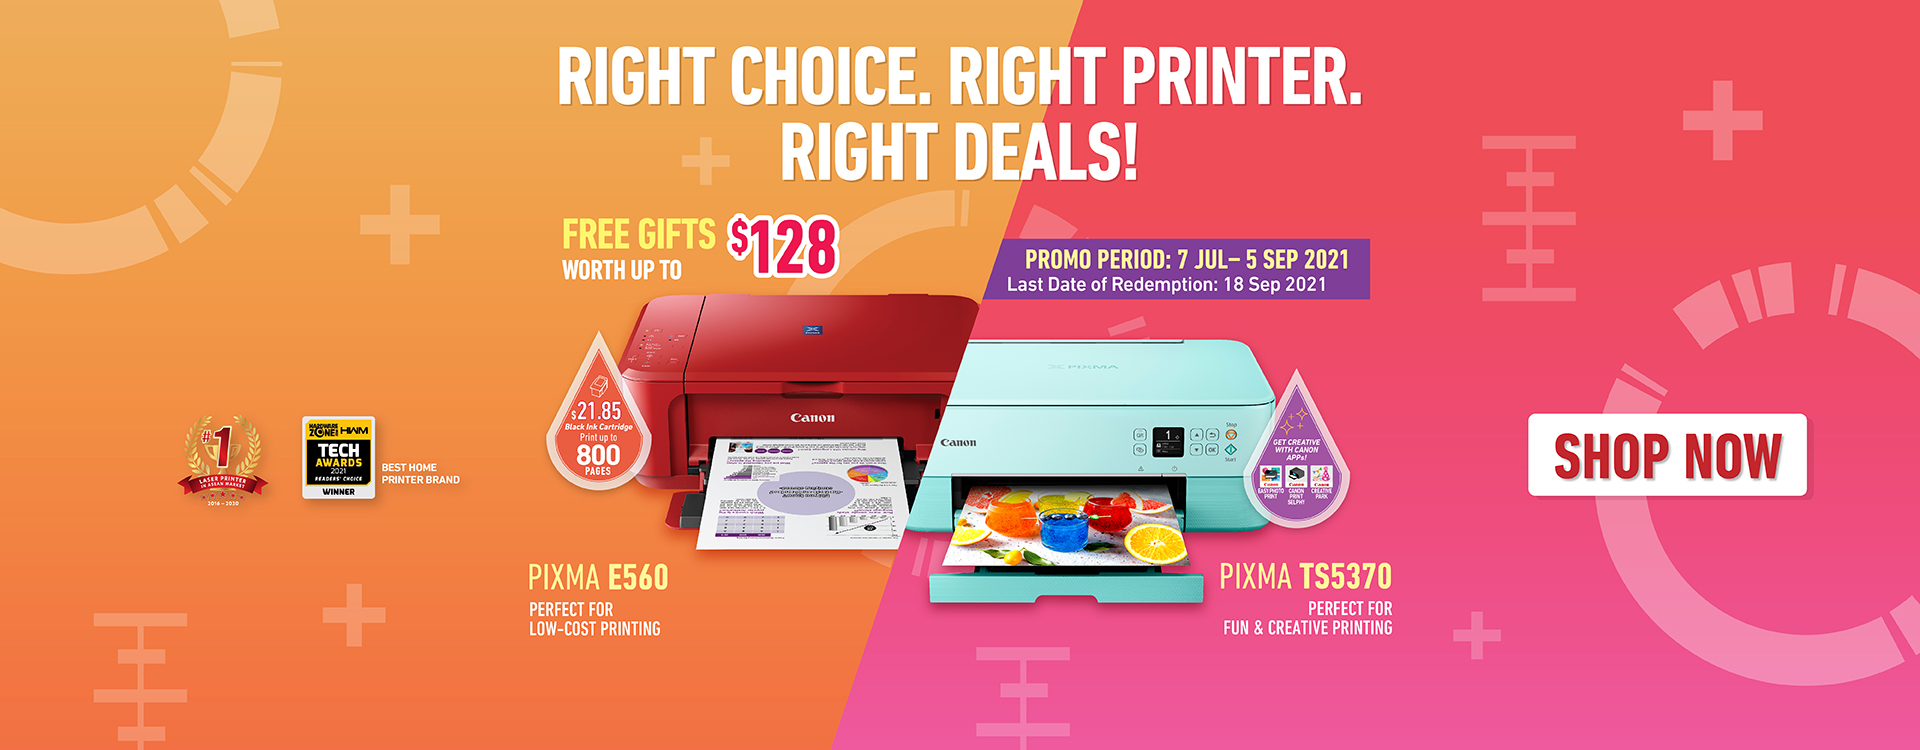 Canon Printer July to Sept Promo Corp Site